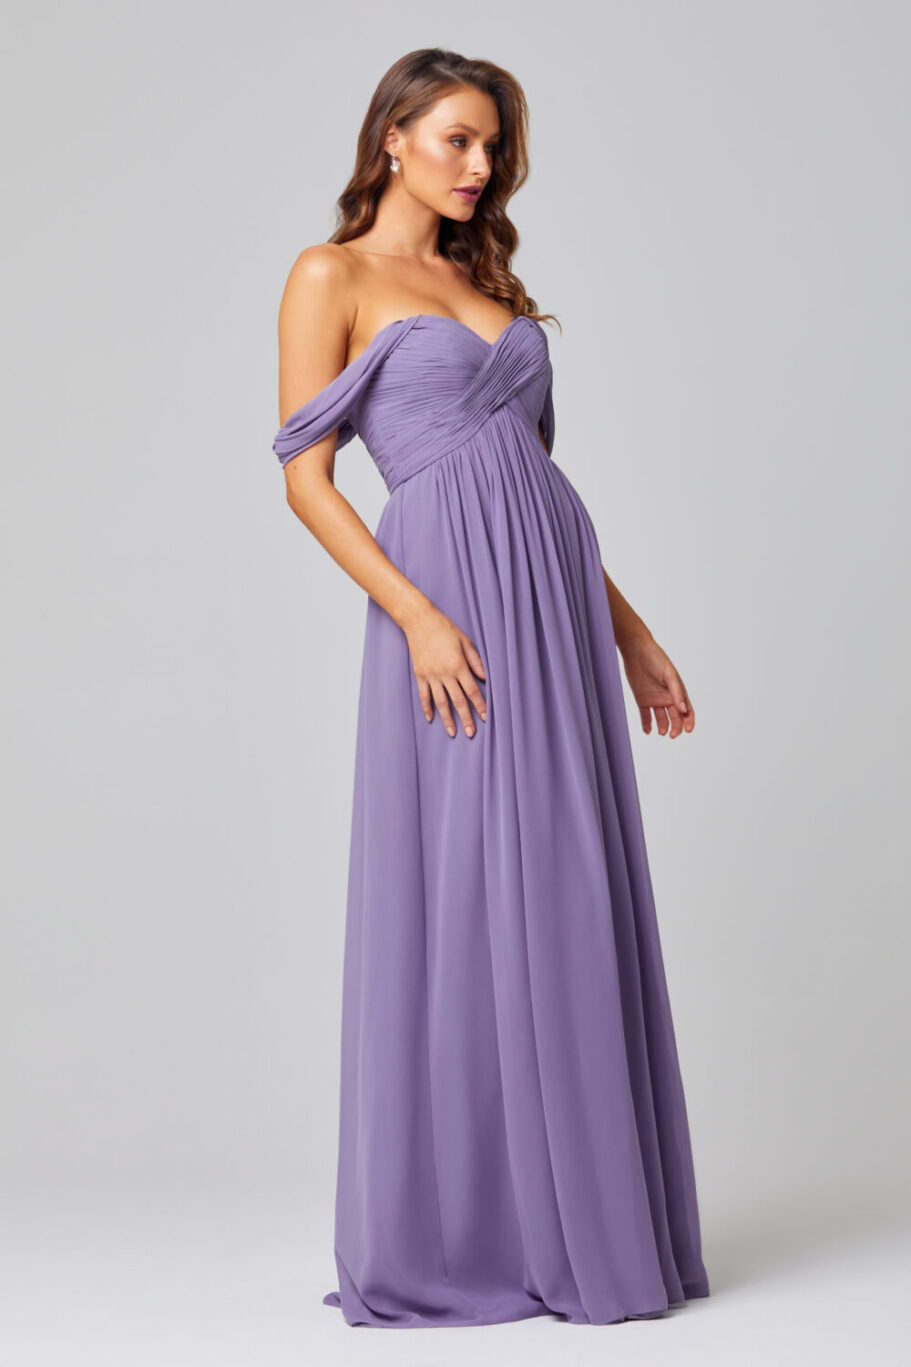 Lucy Off Shoulder Bridesmaid Dress - TO838-LAVENDER-SIDE